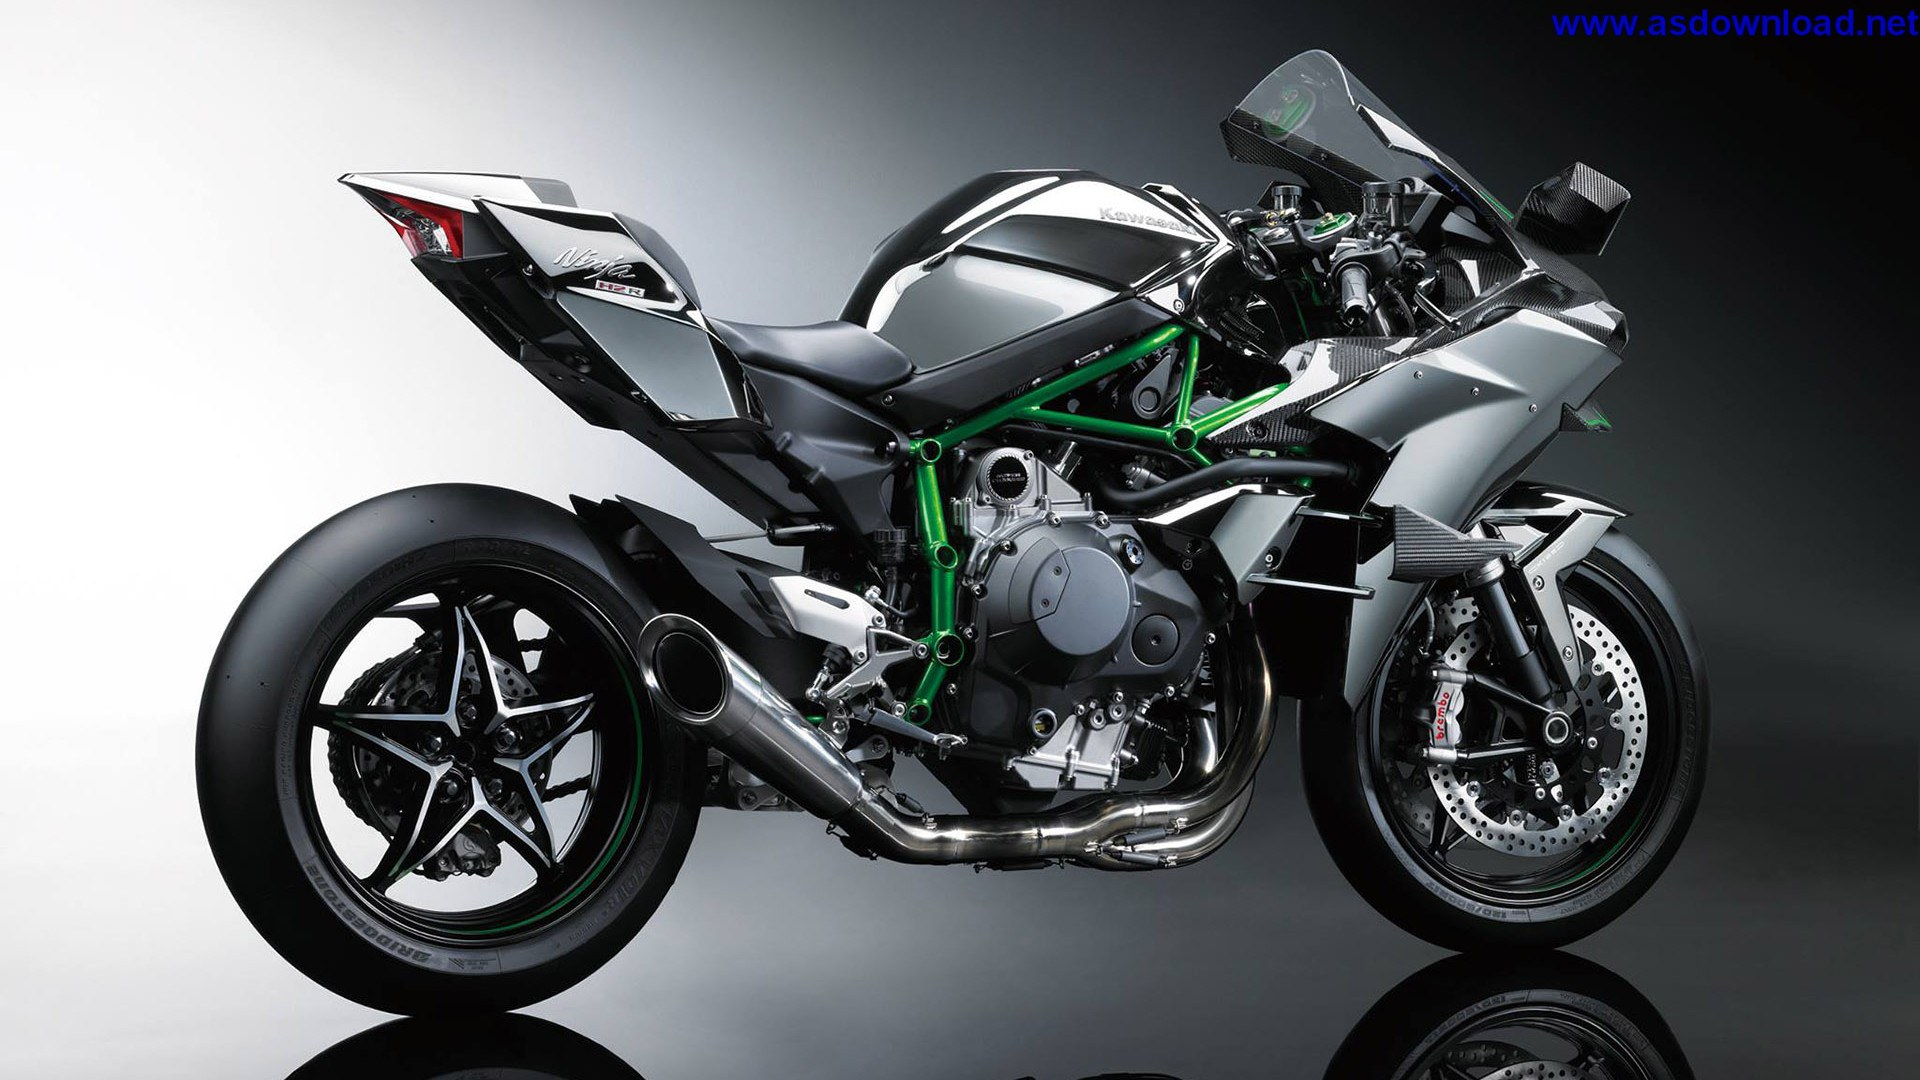 2015-Kawasaki-Ninja-H2R-Supercharged Wallpaper